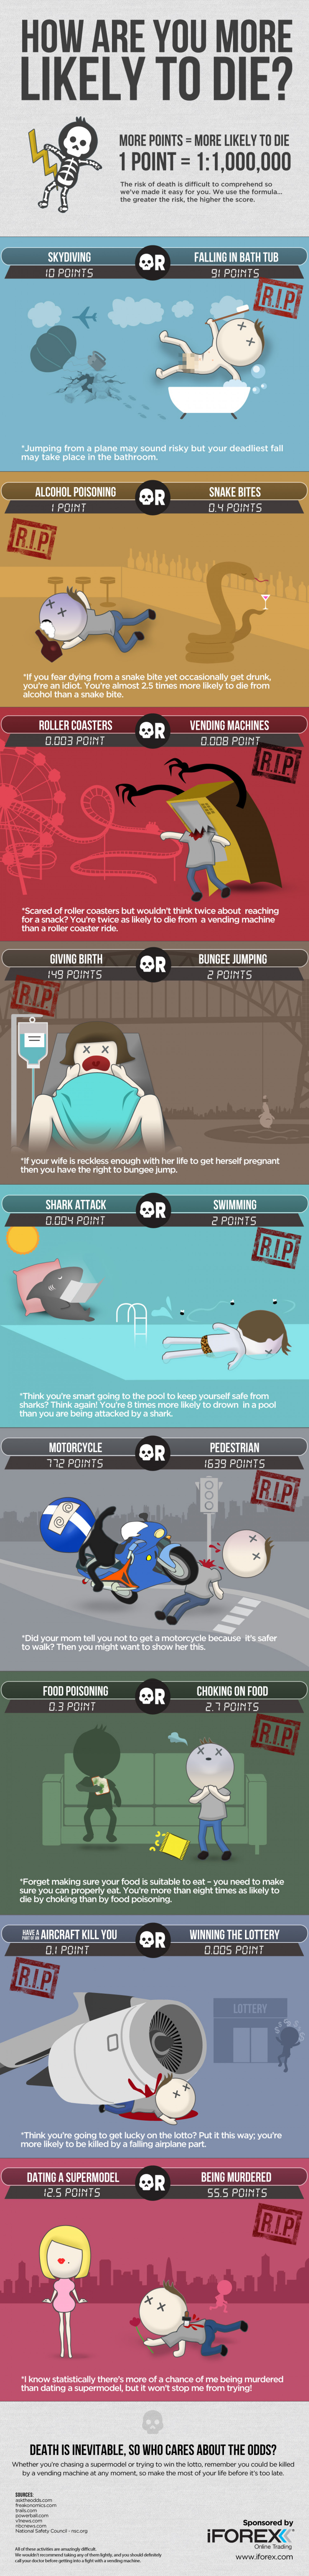 How Are You More likely To Die? [Infographic]